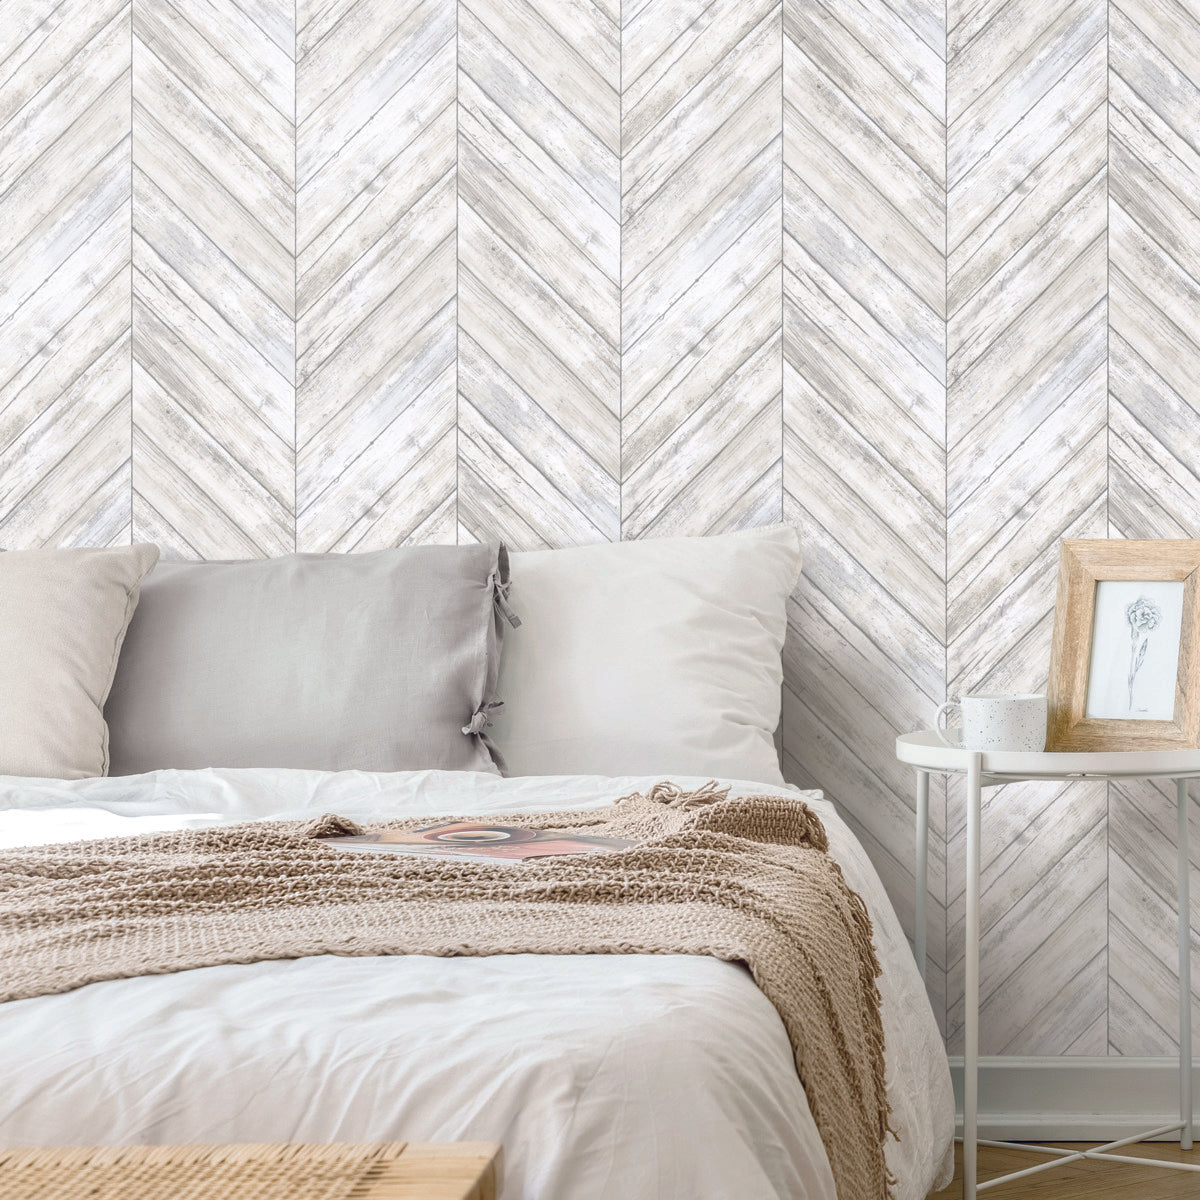 White Chevron Wood Boards Peel And Stick Wallpaper D Marie Interiors